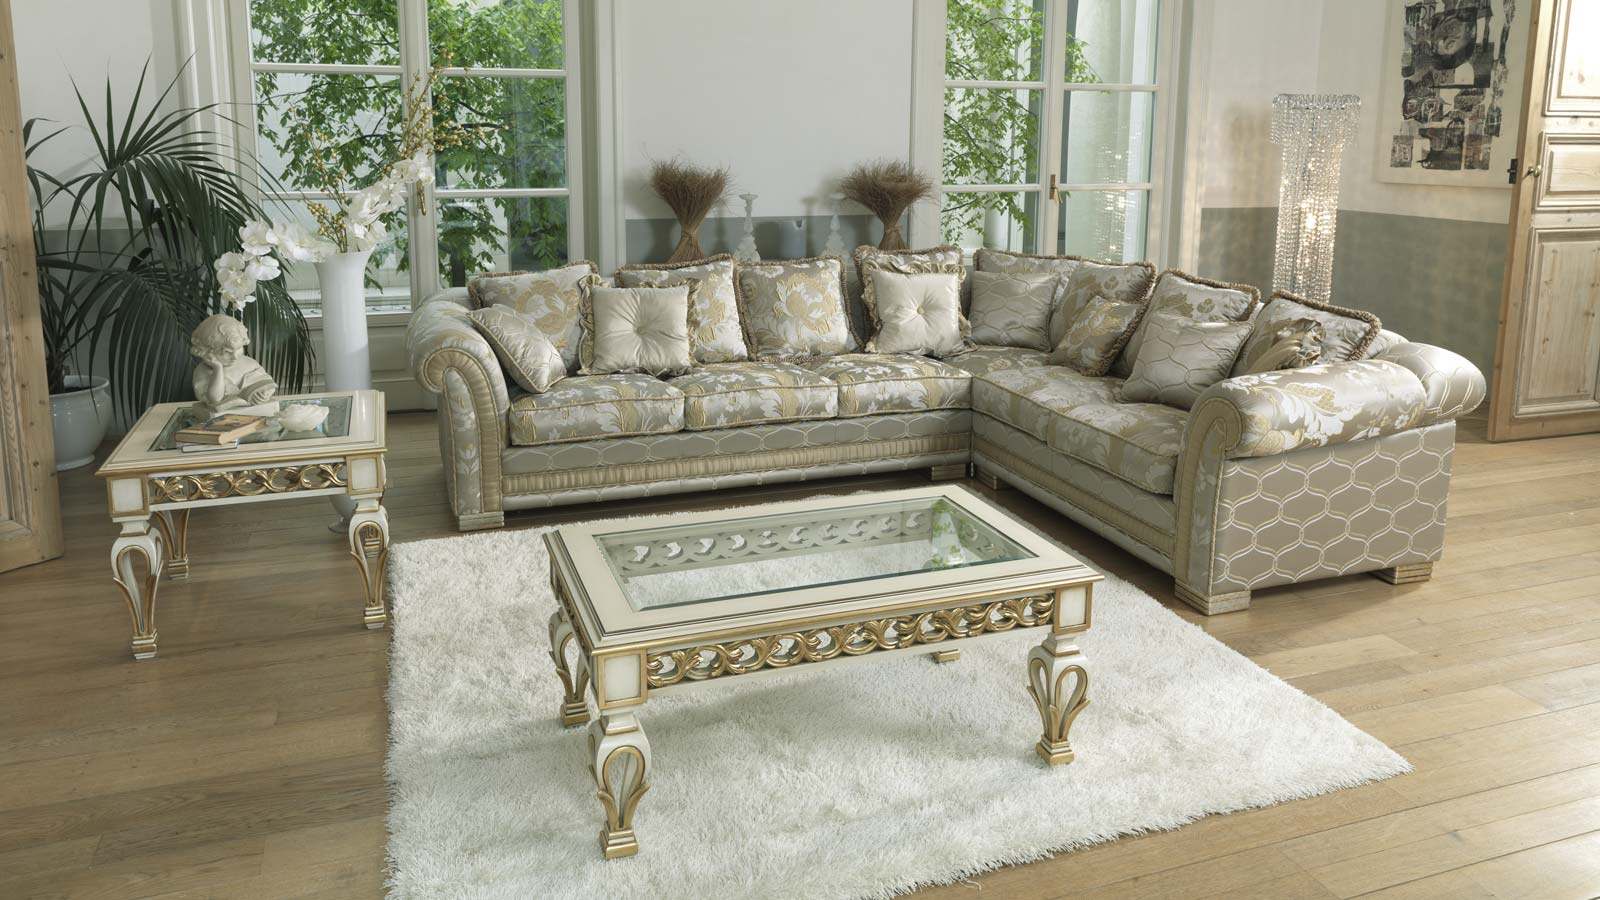 Italian Contemporary Sofas Classic Contemporary Luxury Italian Furniture Collections